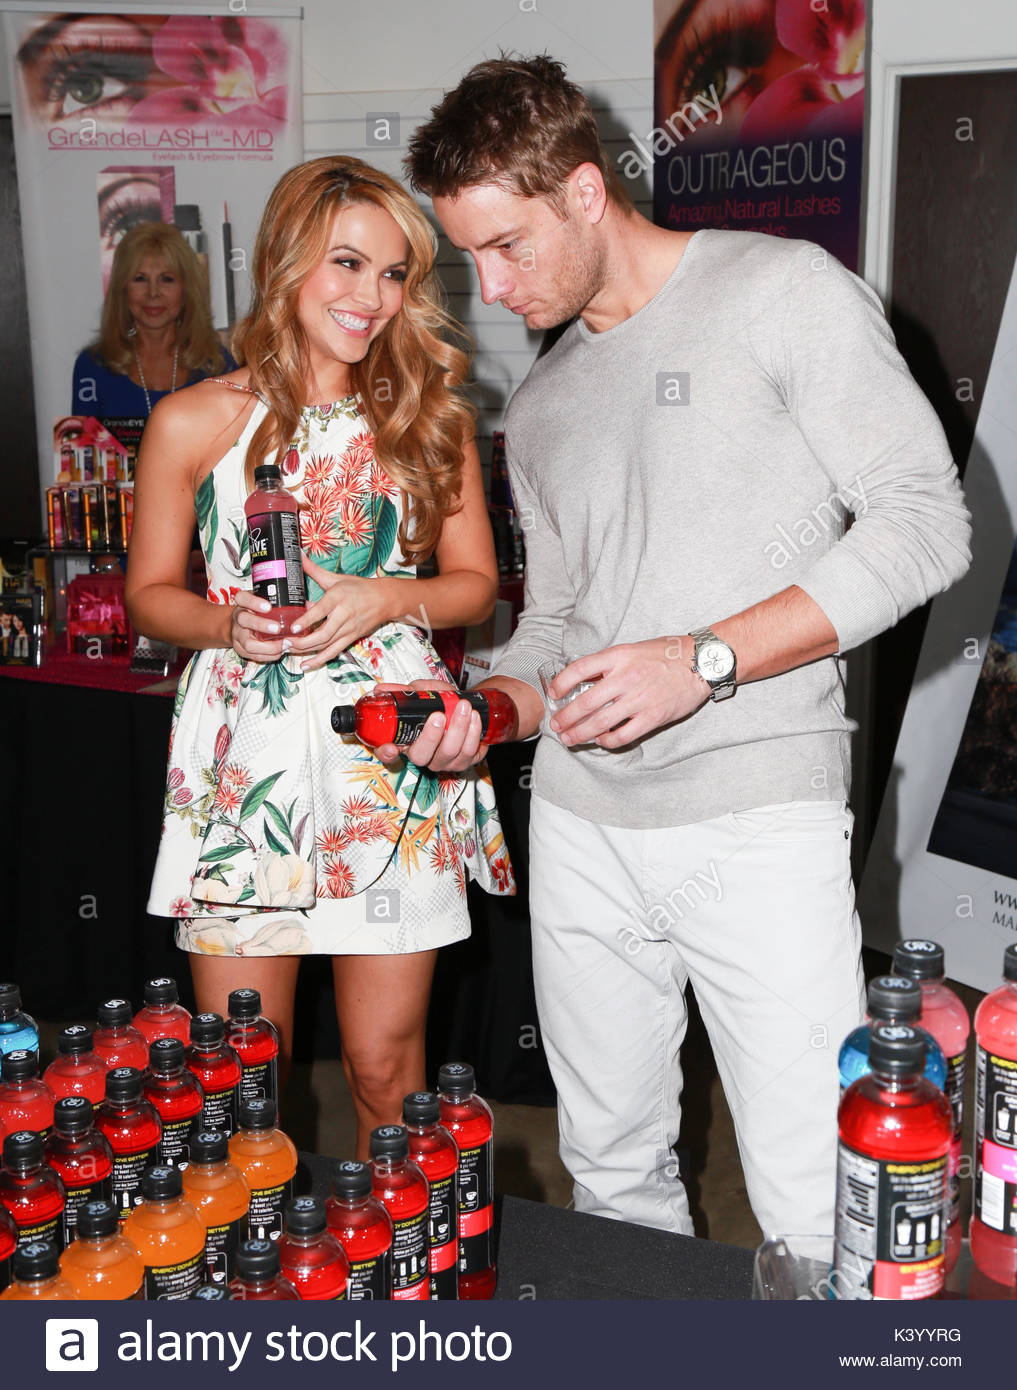 chrishell stause dating The latest tweets from chrishell hartley (@chrishell7) hollywood actress, but a few drinks deep and you'll hear i'm from kentucky.